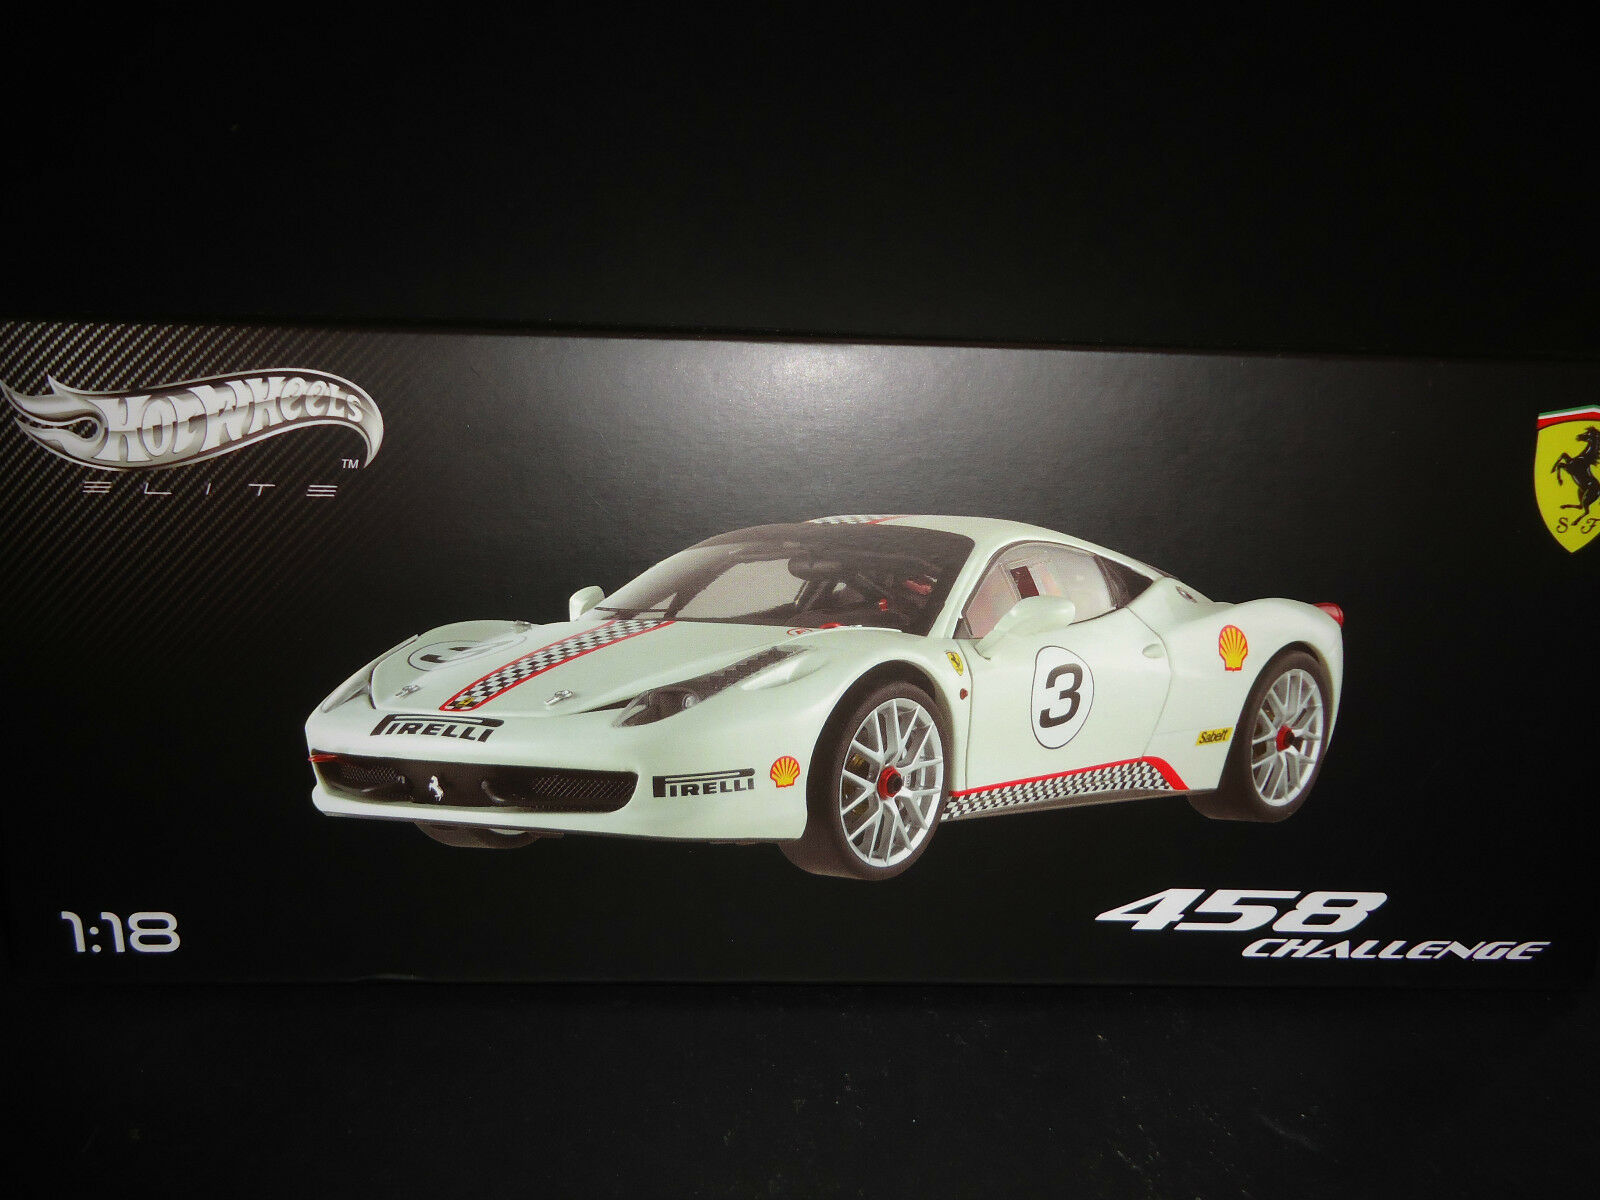 Hot Wheels Elite Ferrari 458 Italia Challenge blancooo 1 18 X5487